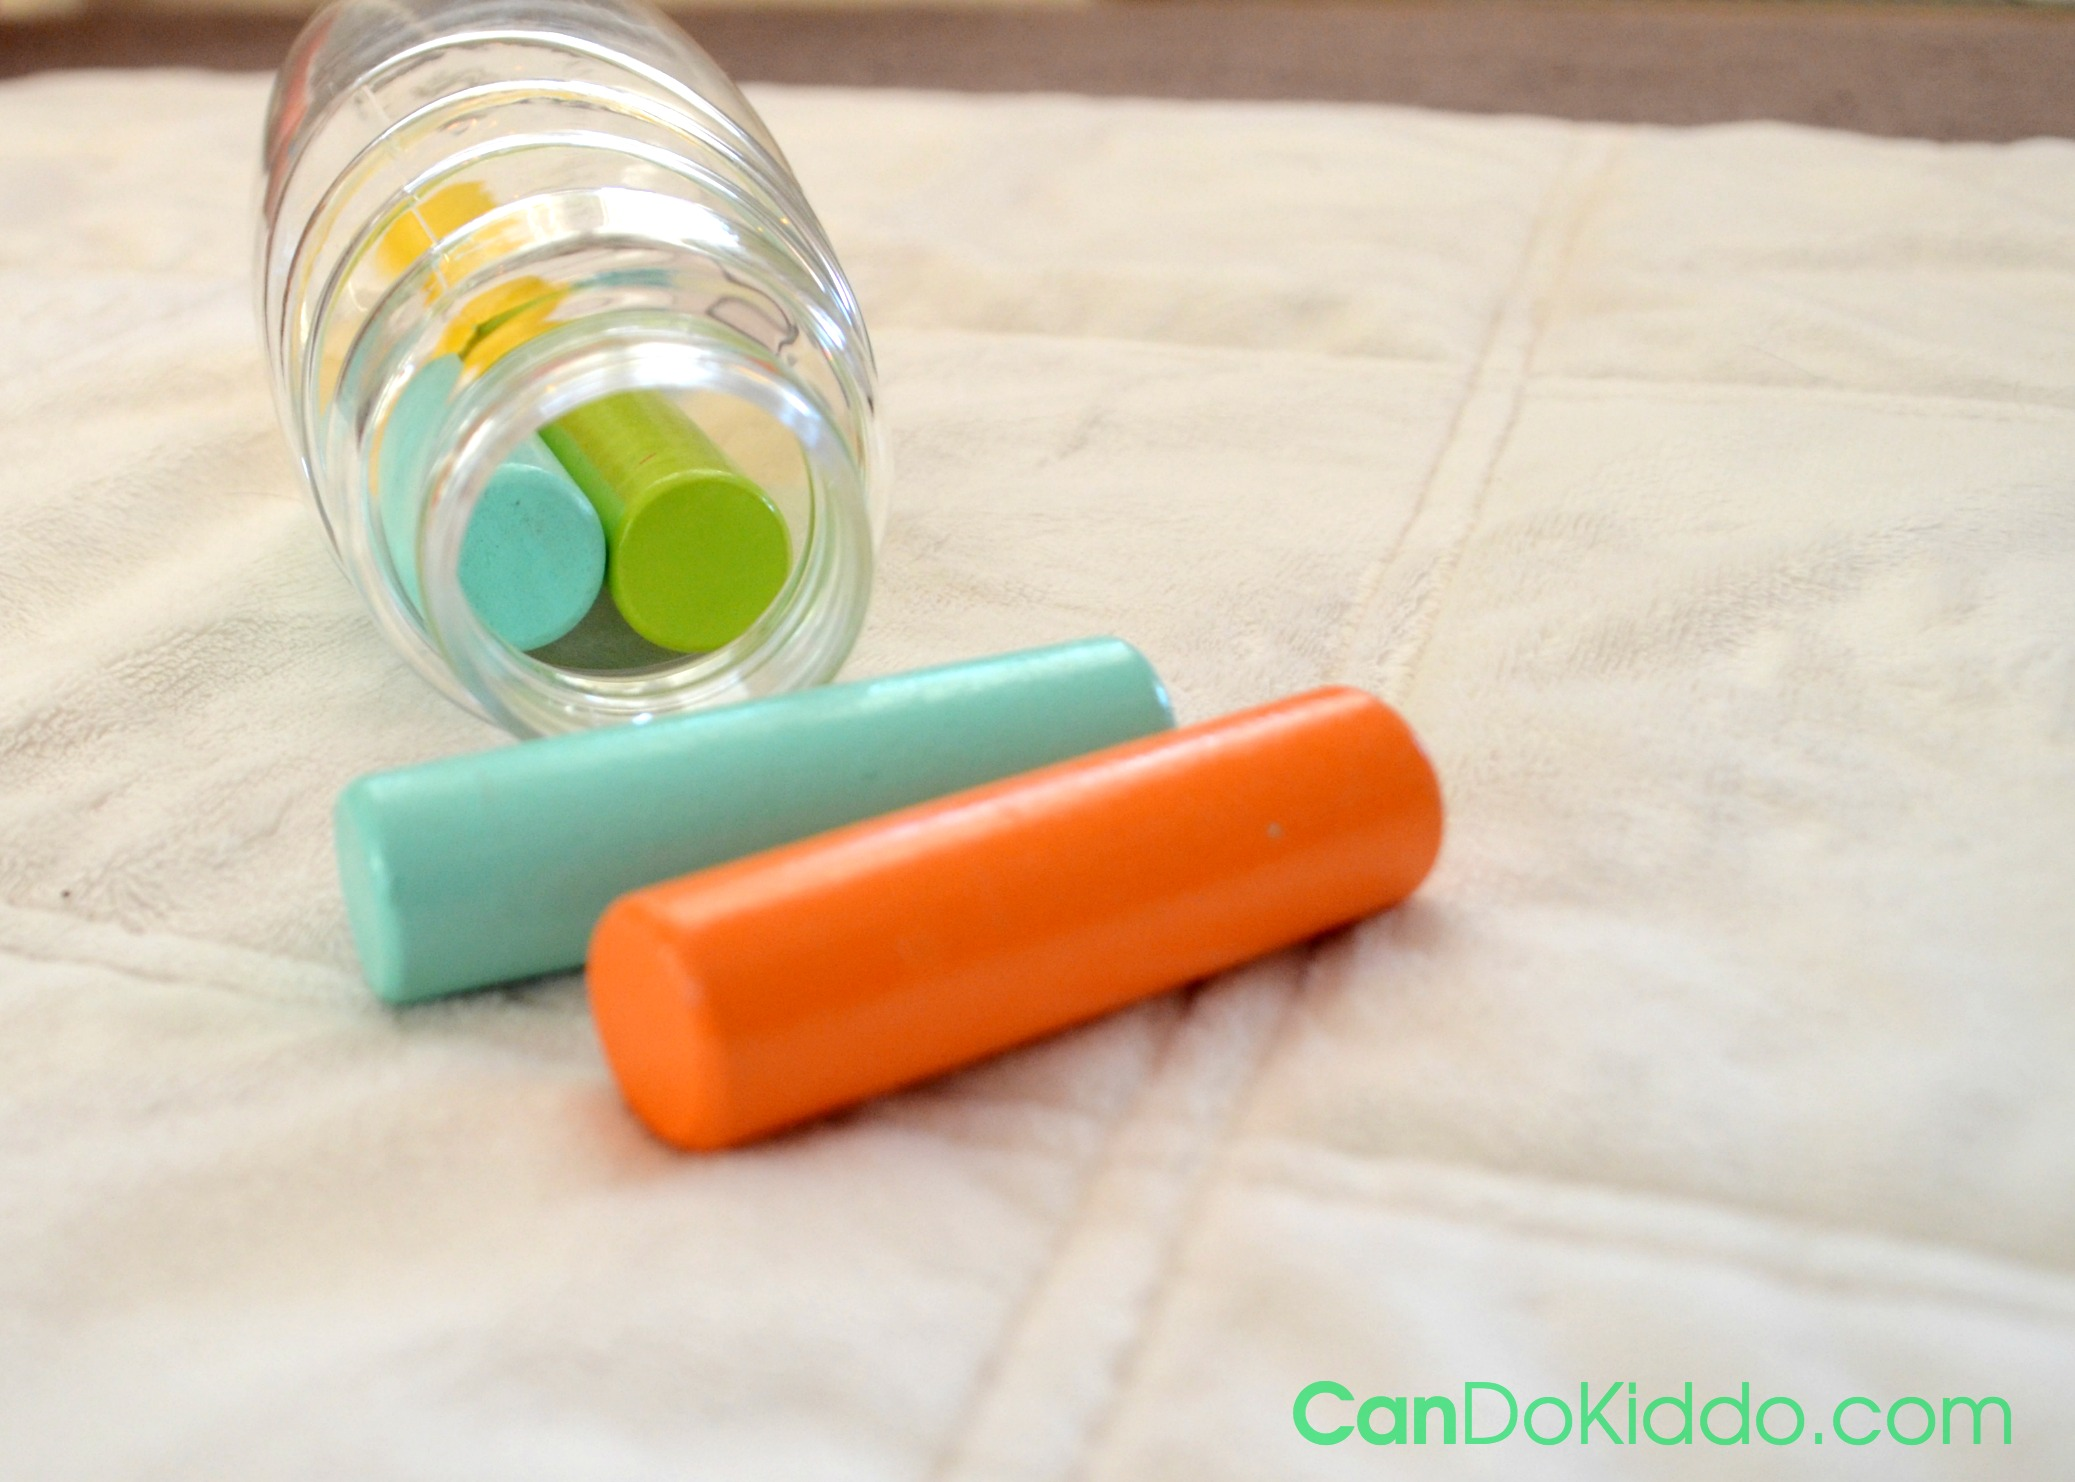 DIY shape sorter for baby. Creative play to keep baby busy and learning.